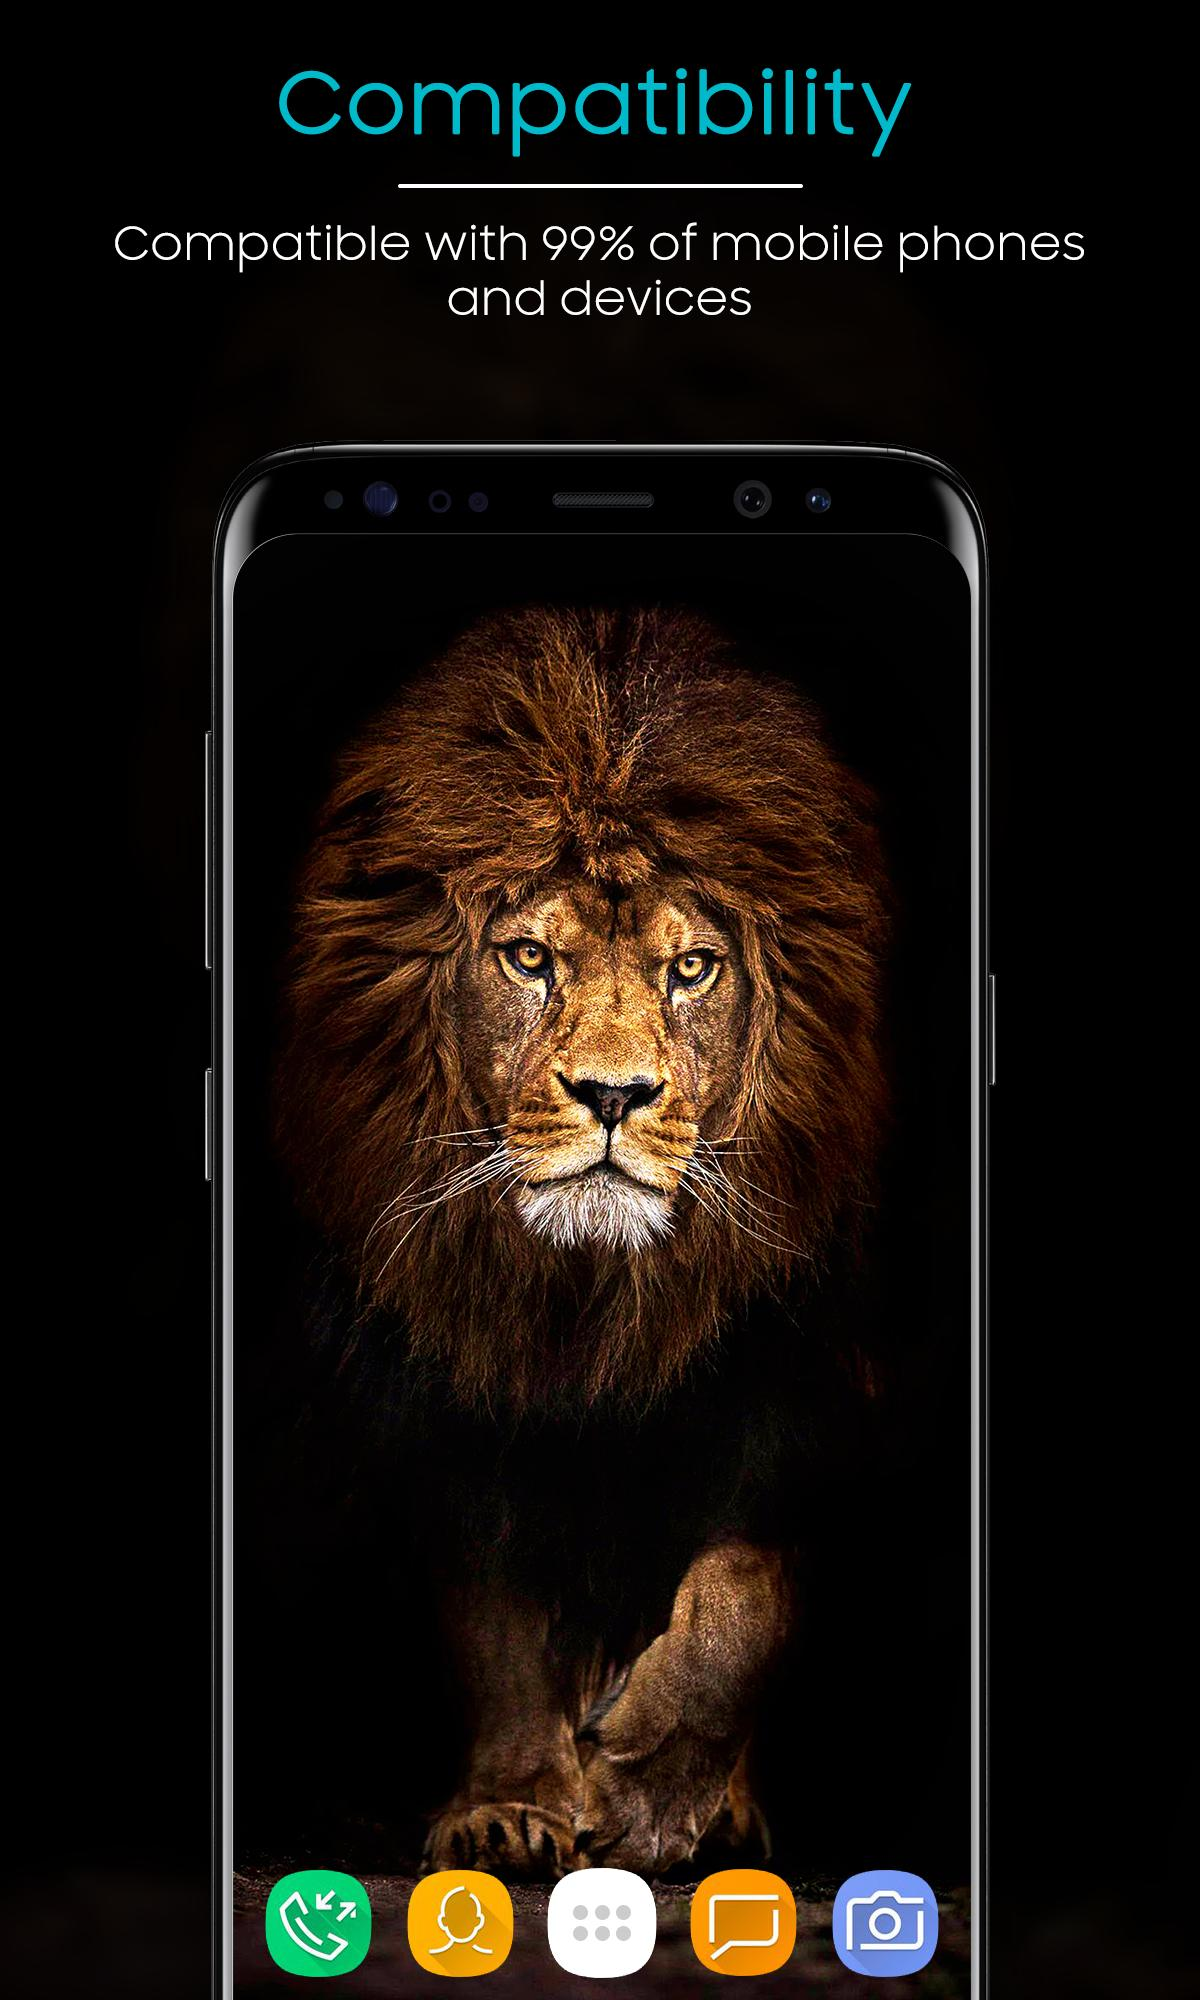 Lion Wallpaper 4k Wallpaper Free For Android Apk Download